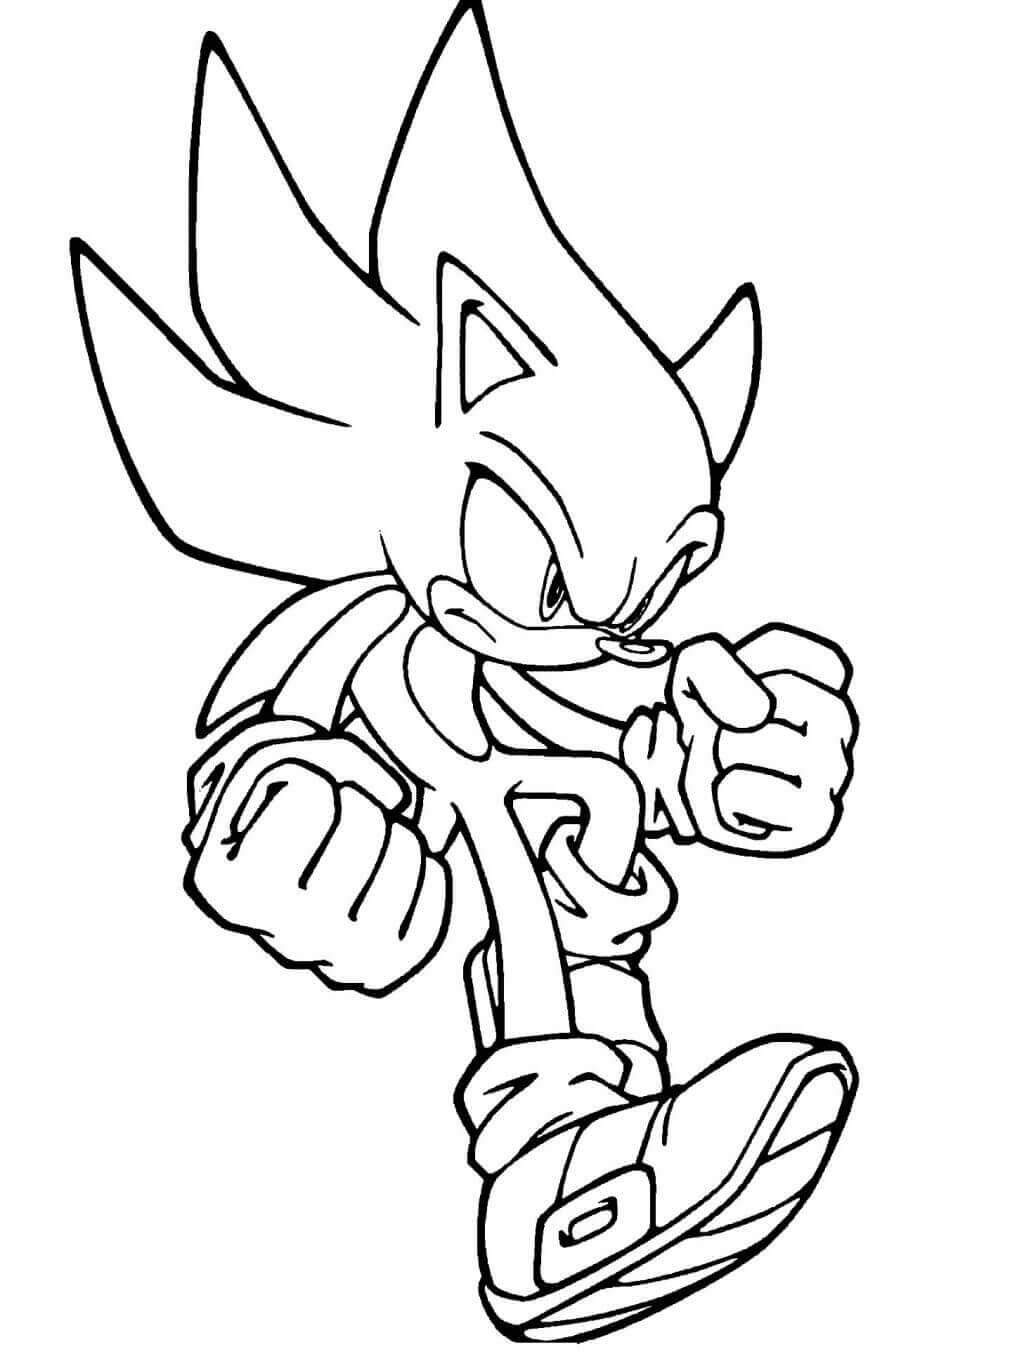 sonic printable sonic coloring pages for boys educative printable printable sonic